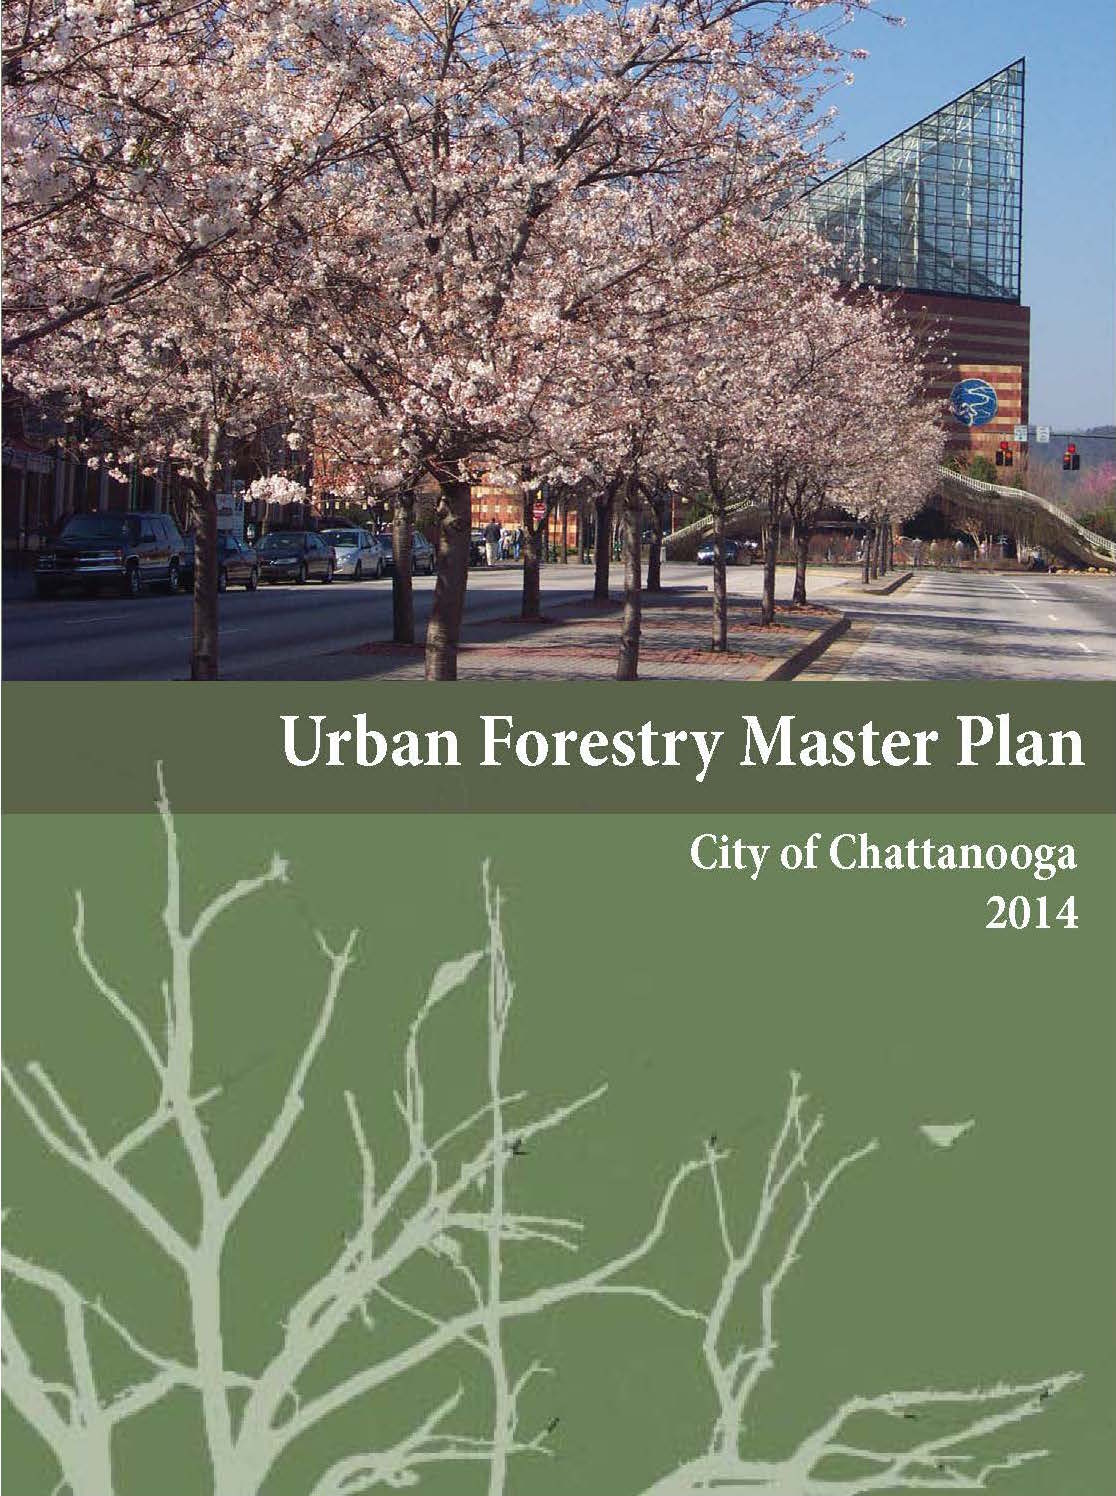 Chattanooga Urban Forestry Plan 2014 thumbnail.jpg